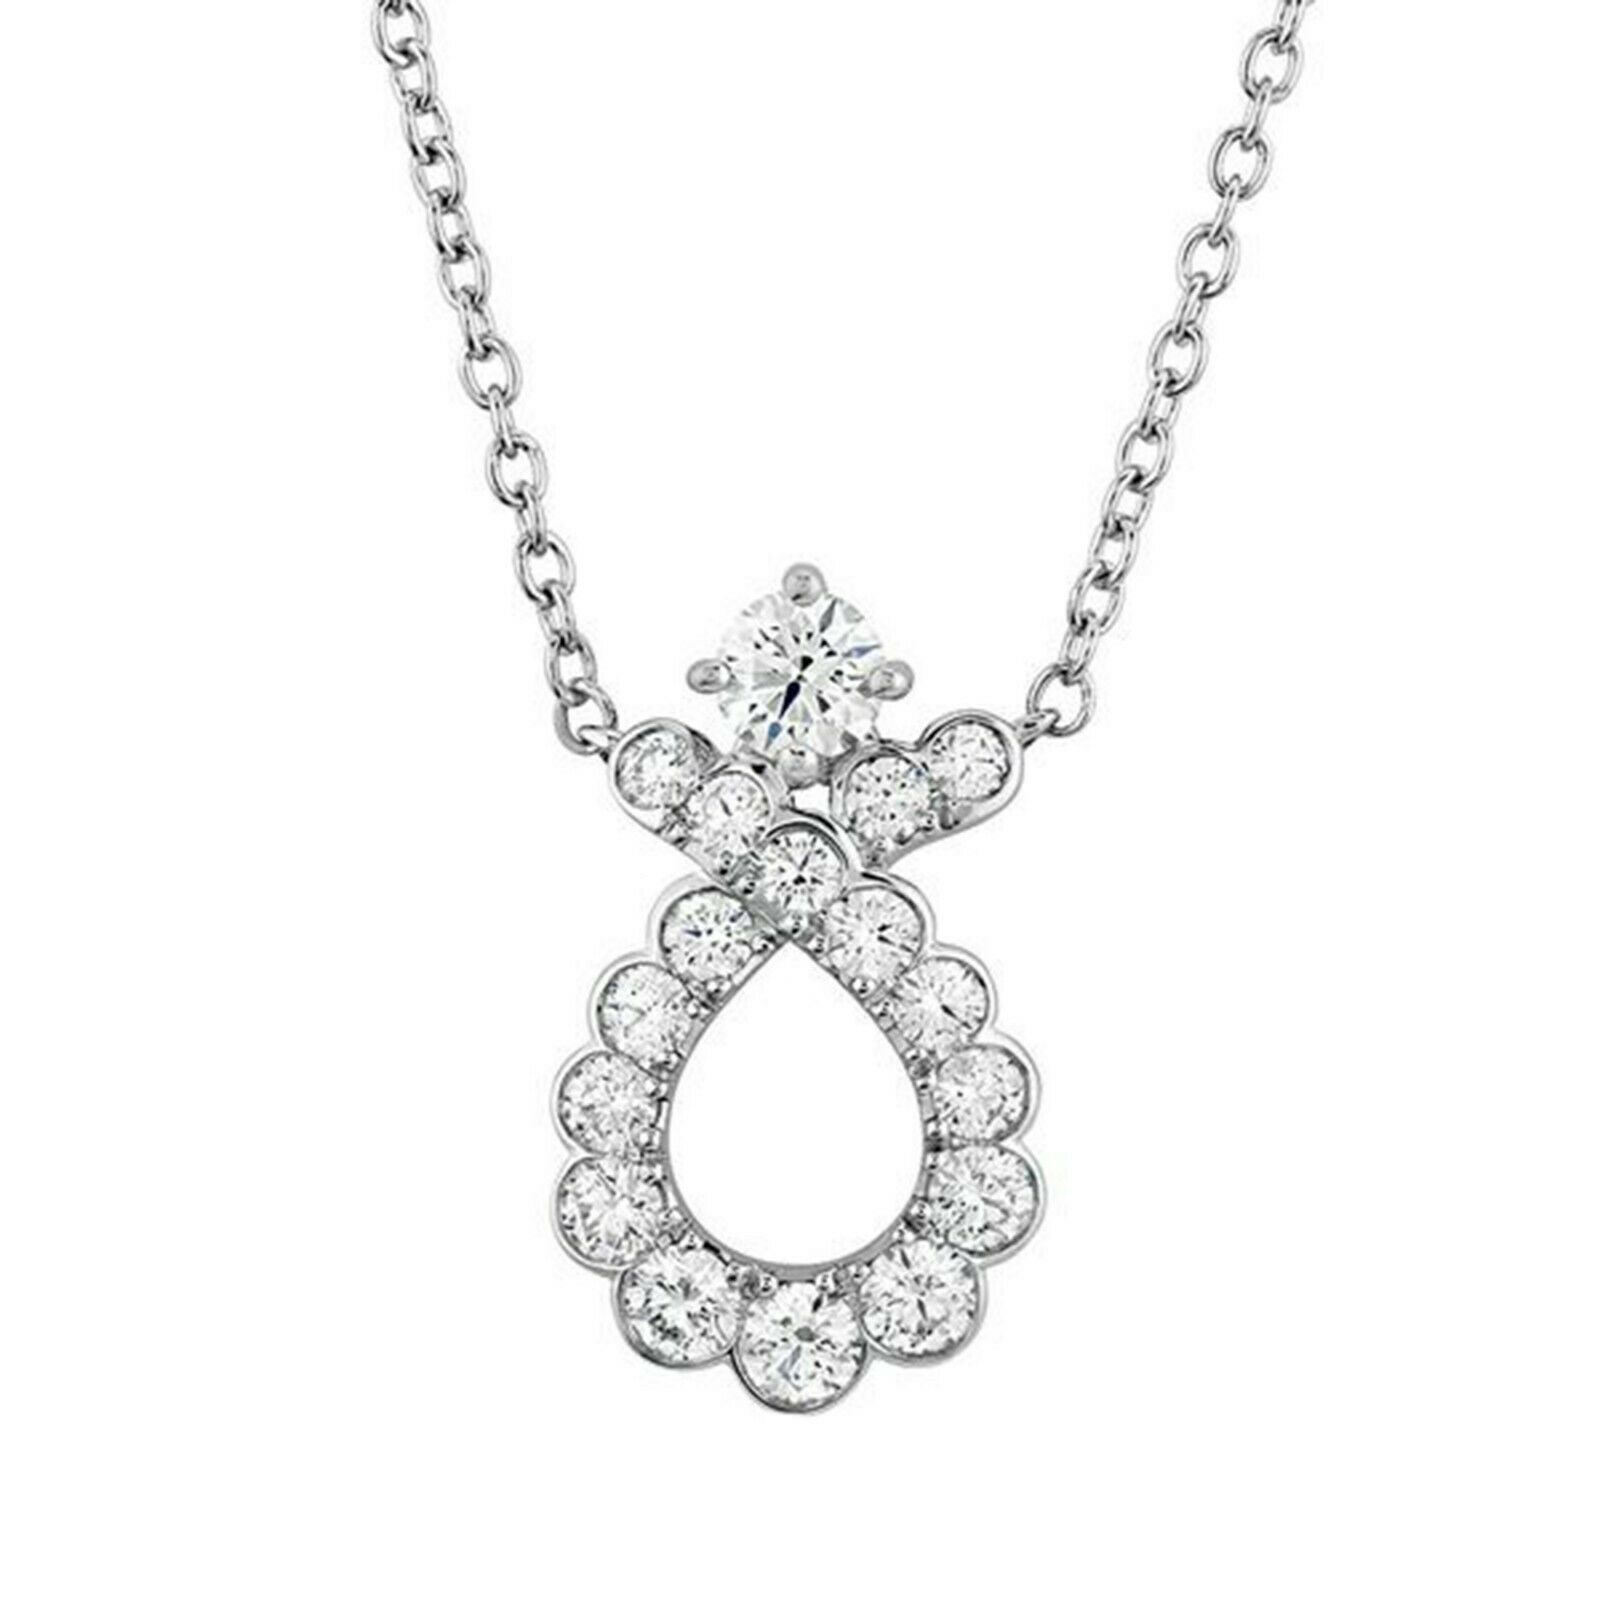 "Primary image for Classic 14K White Gold Over Round Diamond Solitaire Ribbon Pendant 18"" Necklace"